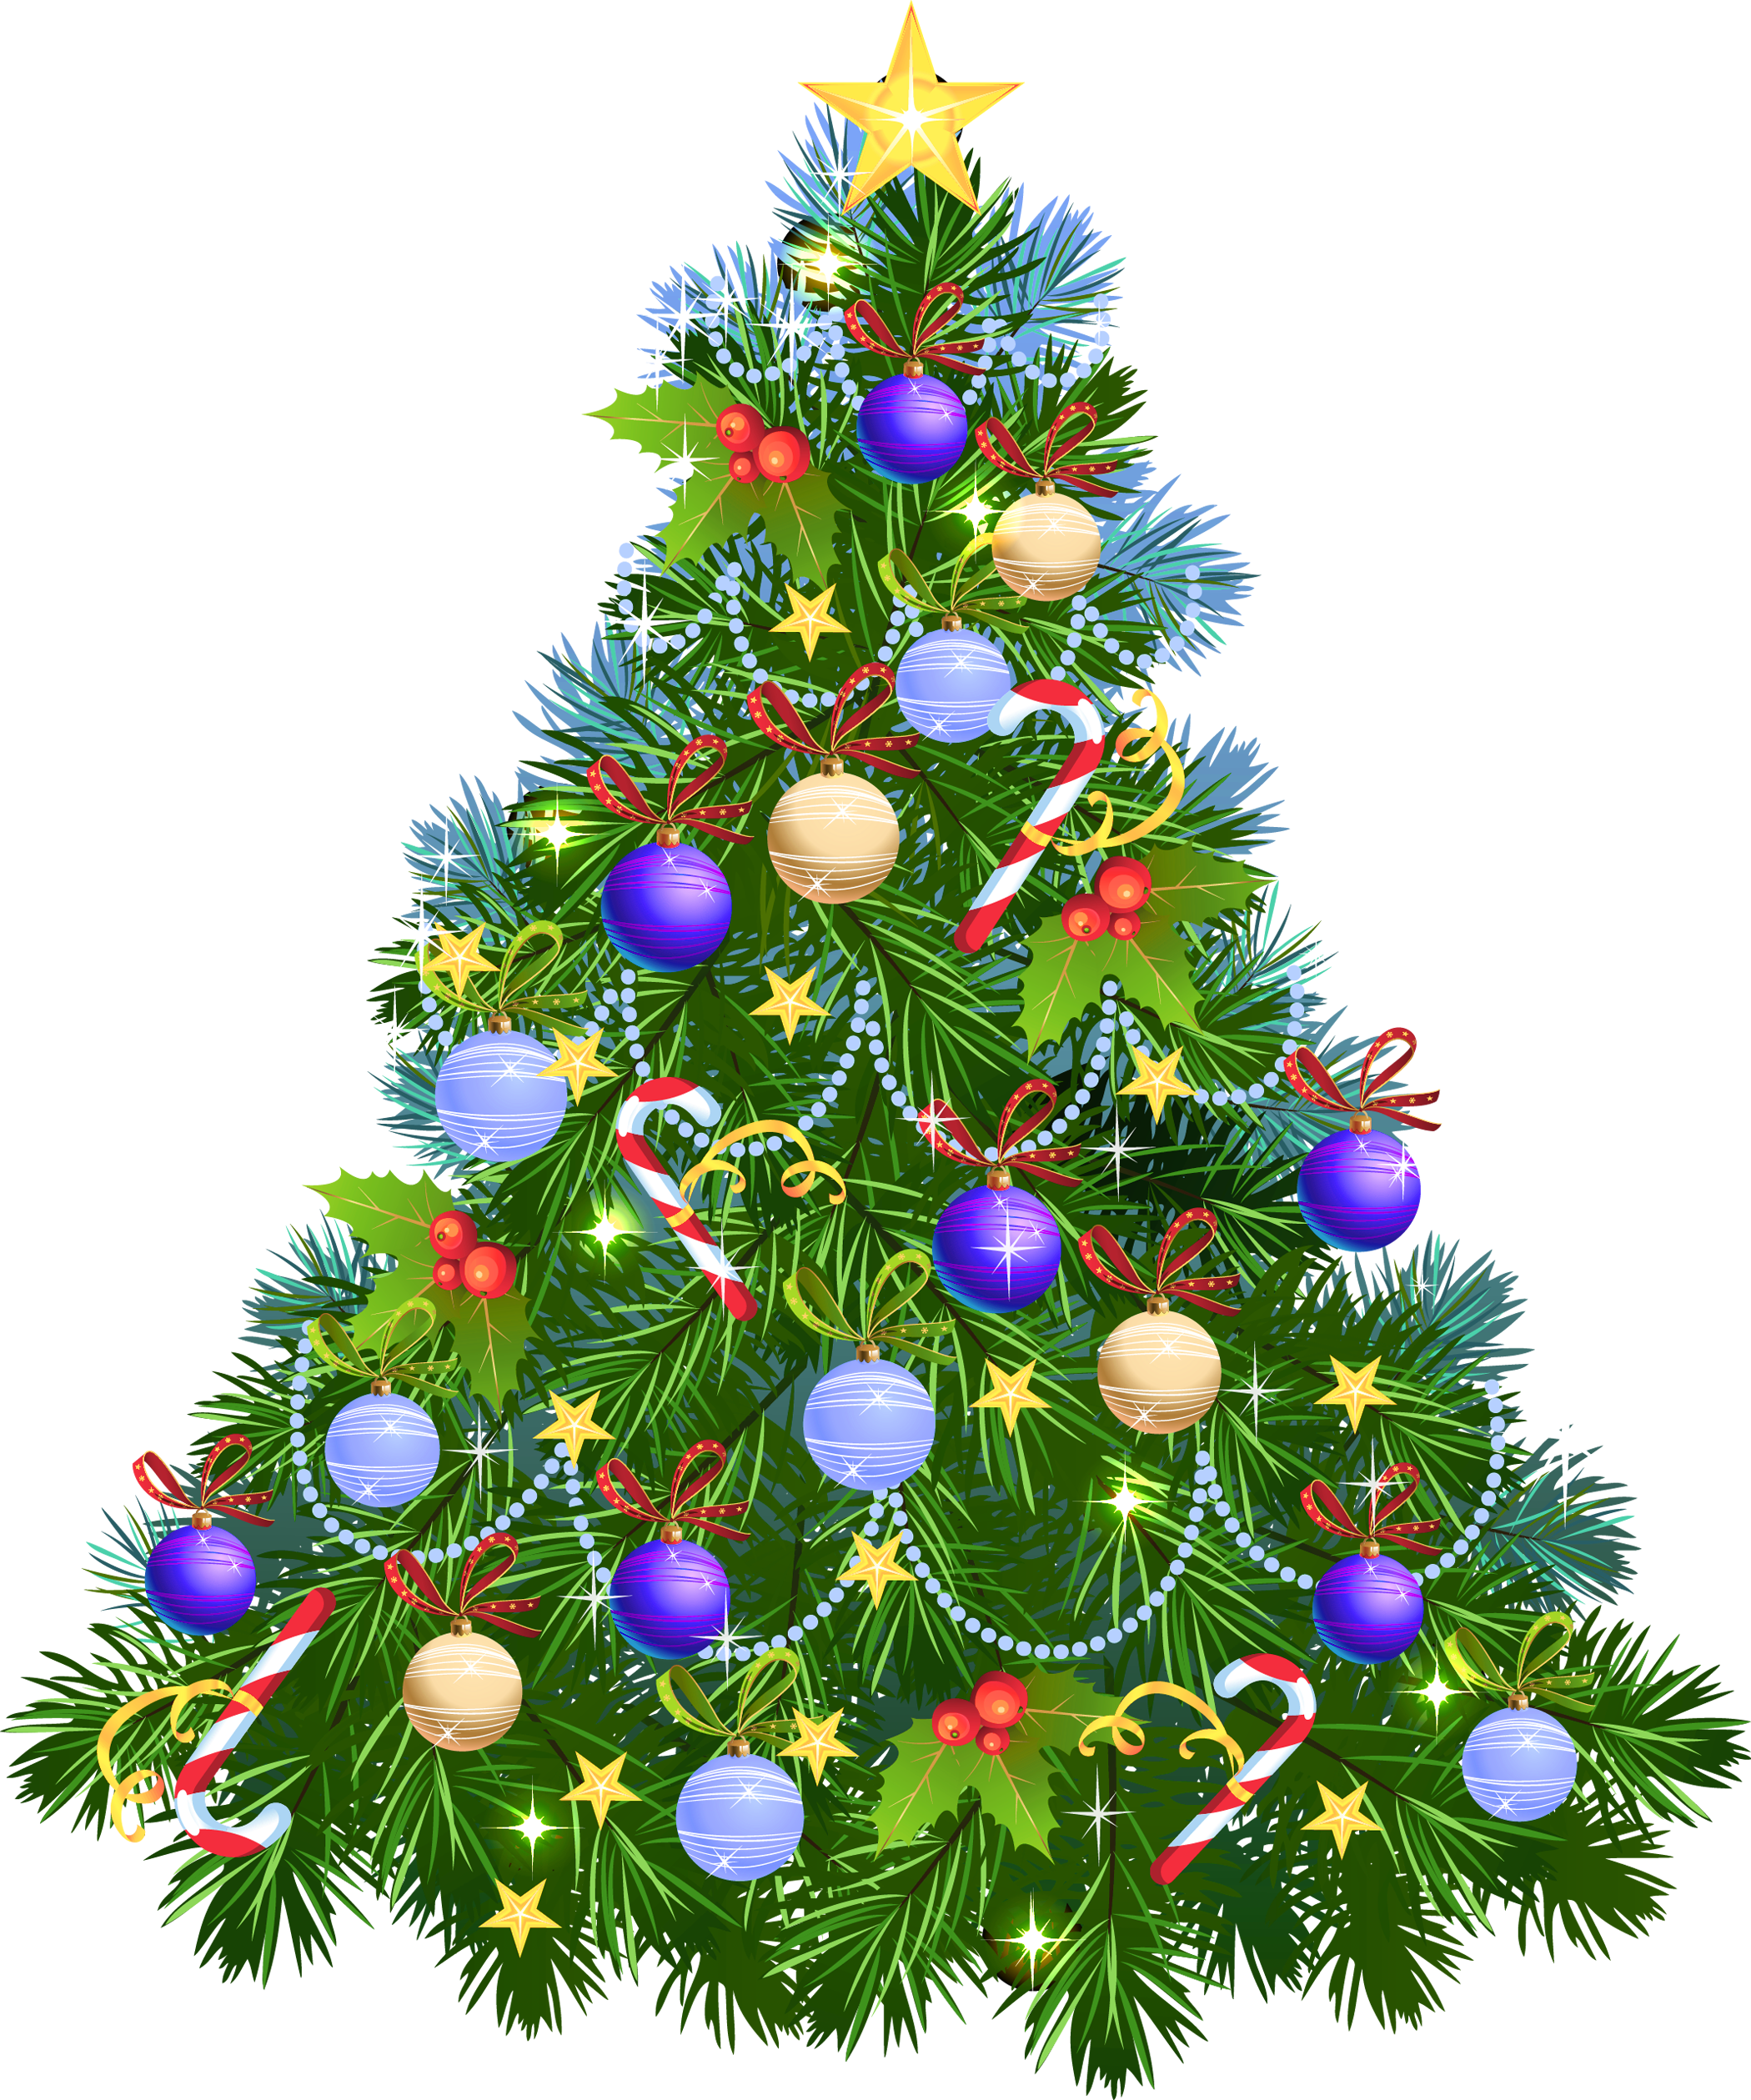 Transparent PNG Christmas Tree with Purple Ornaments.